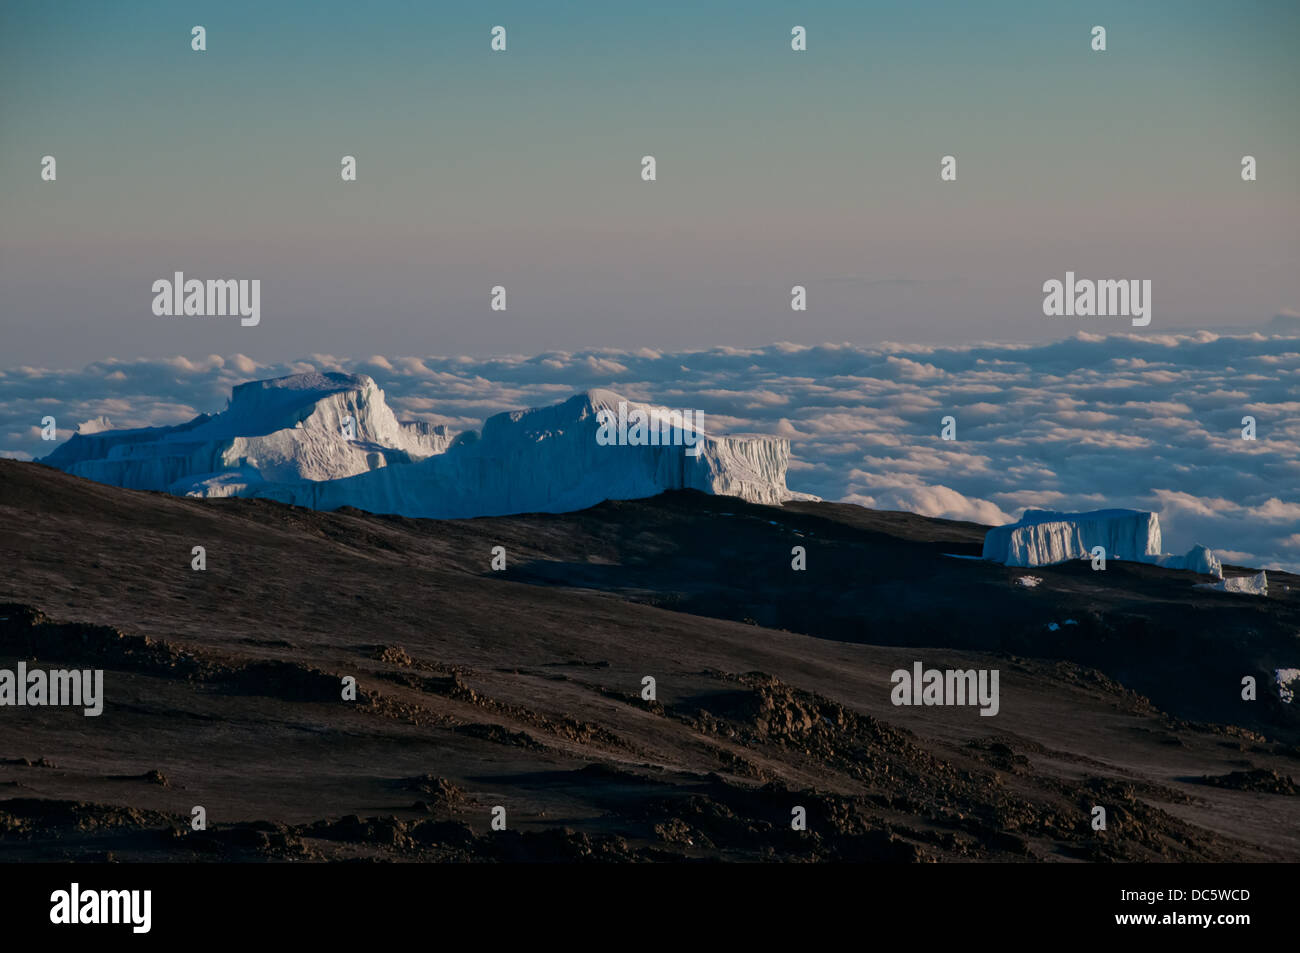 High above the clouds the early morning sun beginning to appear on the glaciers on the crater rim of Kilimanjaro - Stock Image